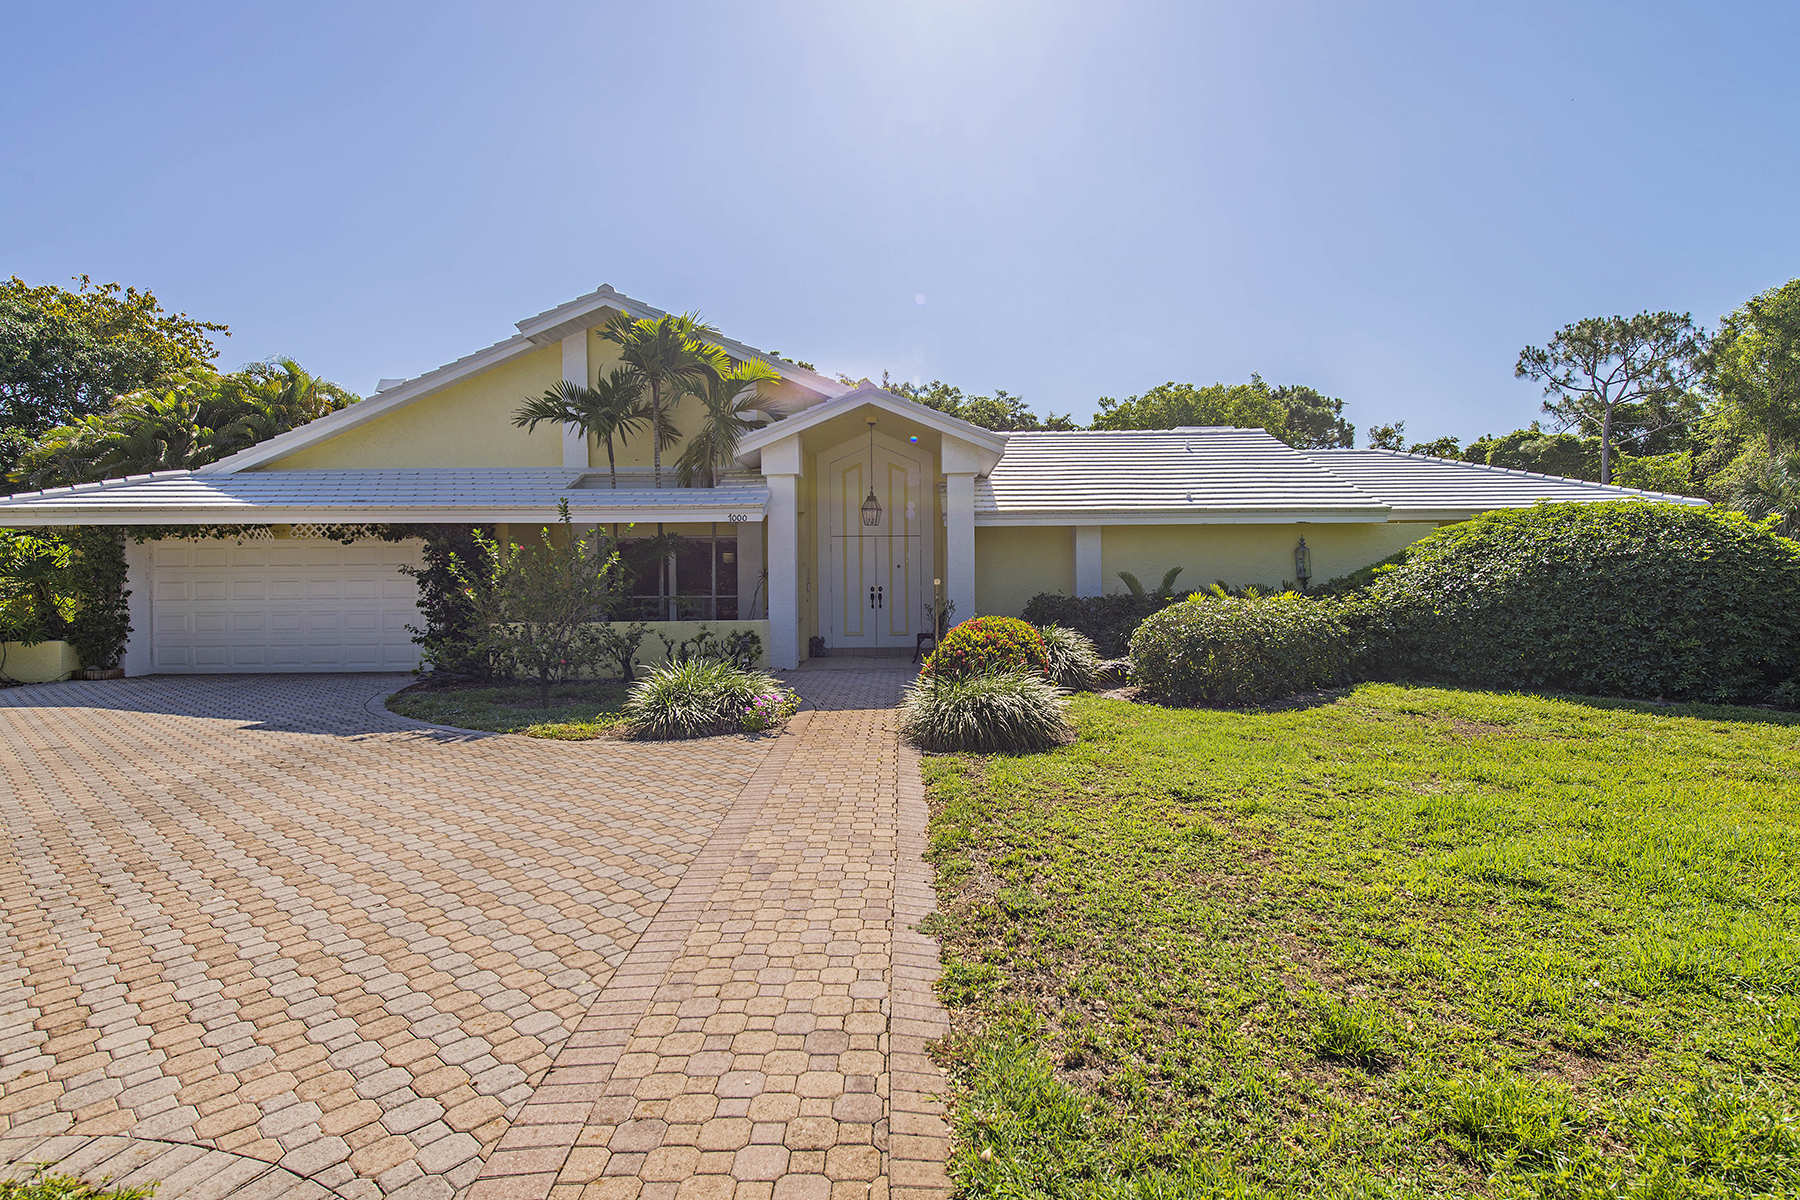 Single Family Home for Sale at PINE RIDGE 7000 Trail Blvd Naples, Florida 34108 United States